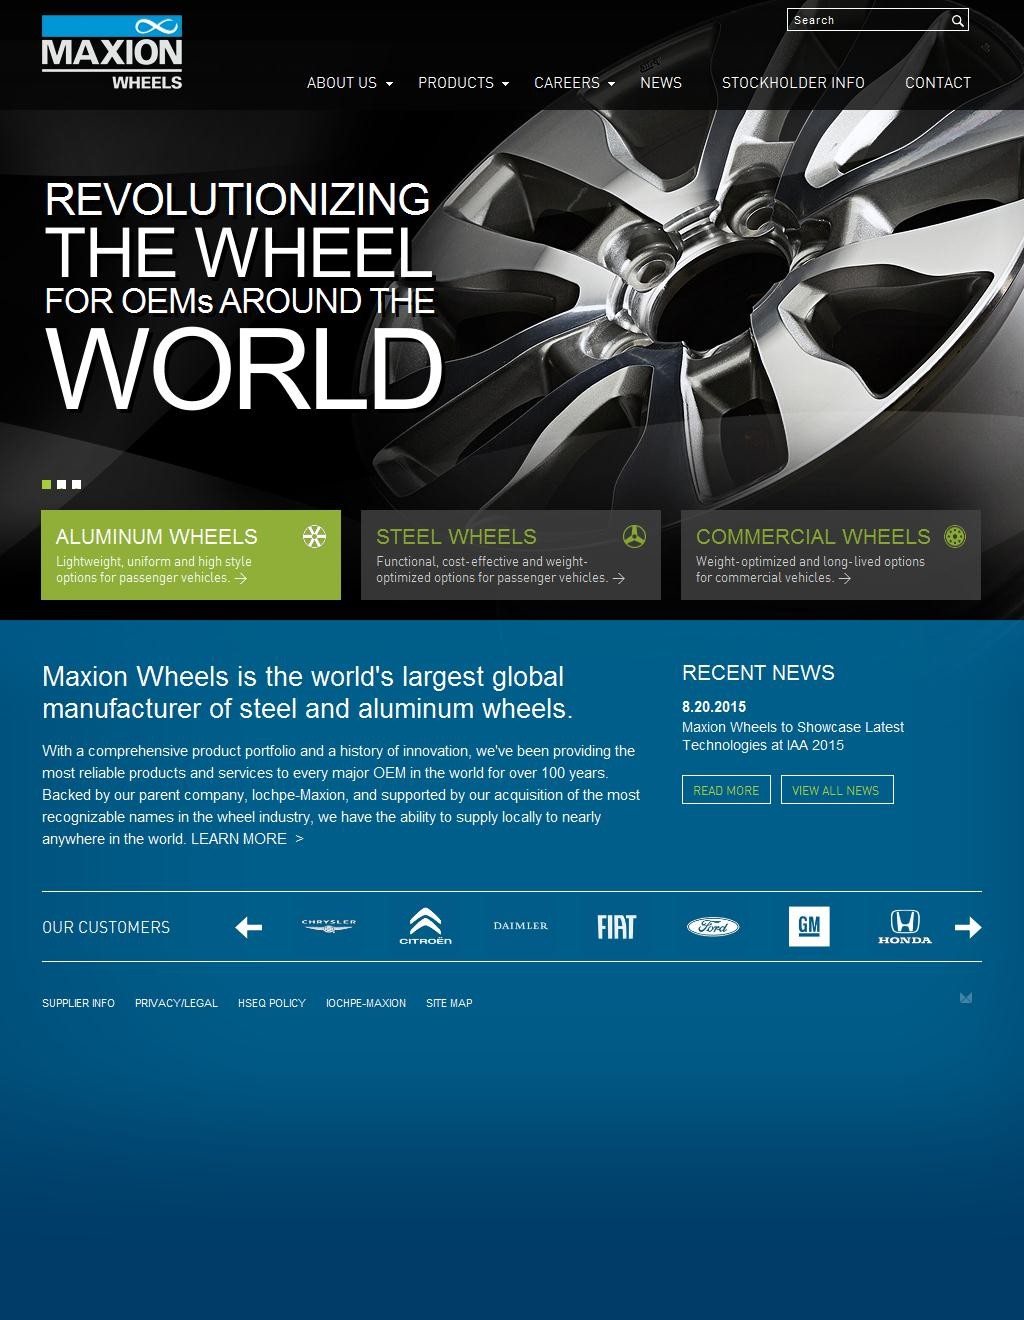 The world's largest global manufacturer of steel and aluminum wheels